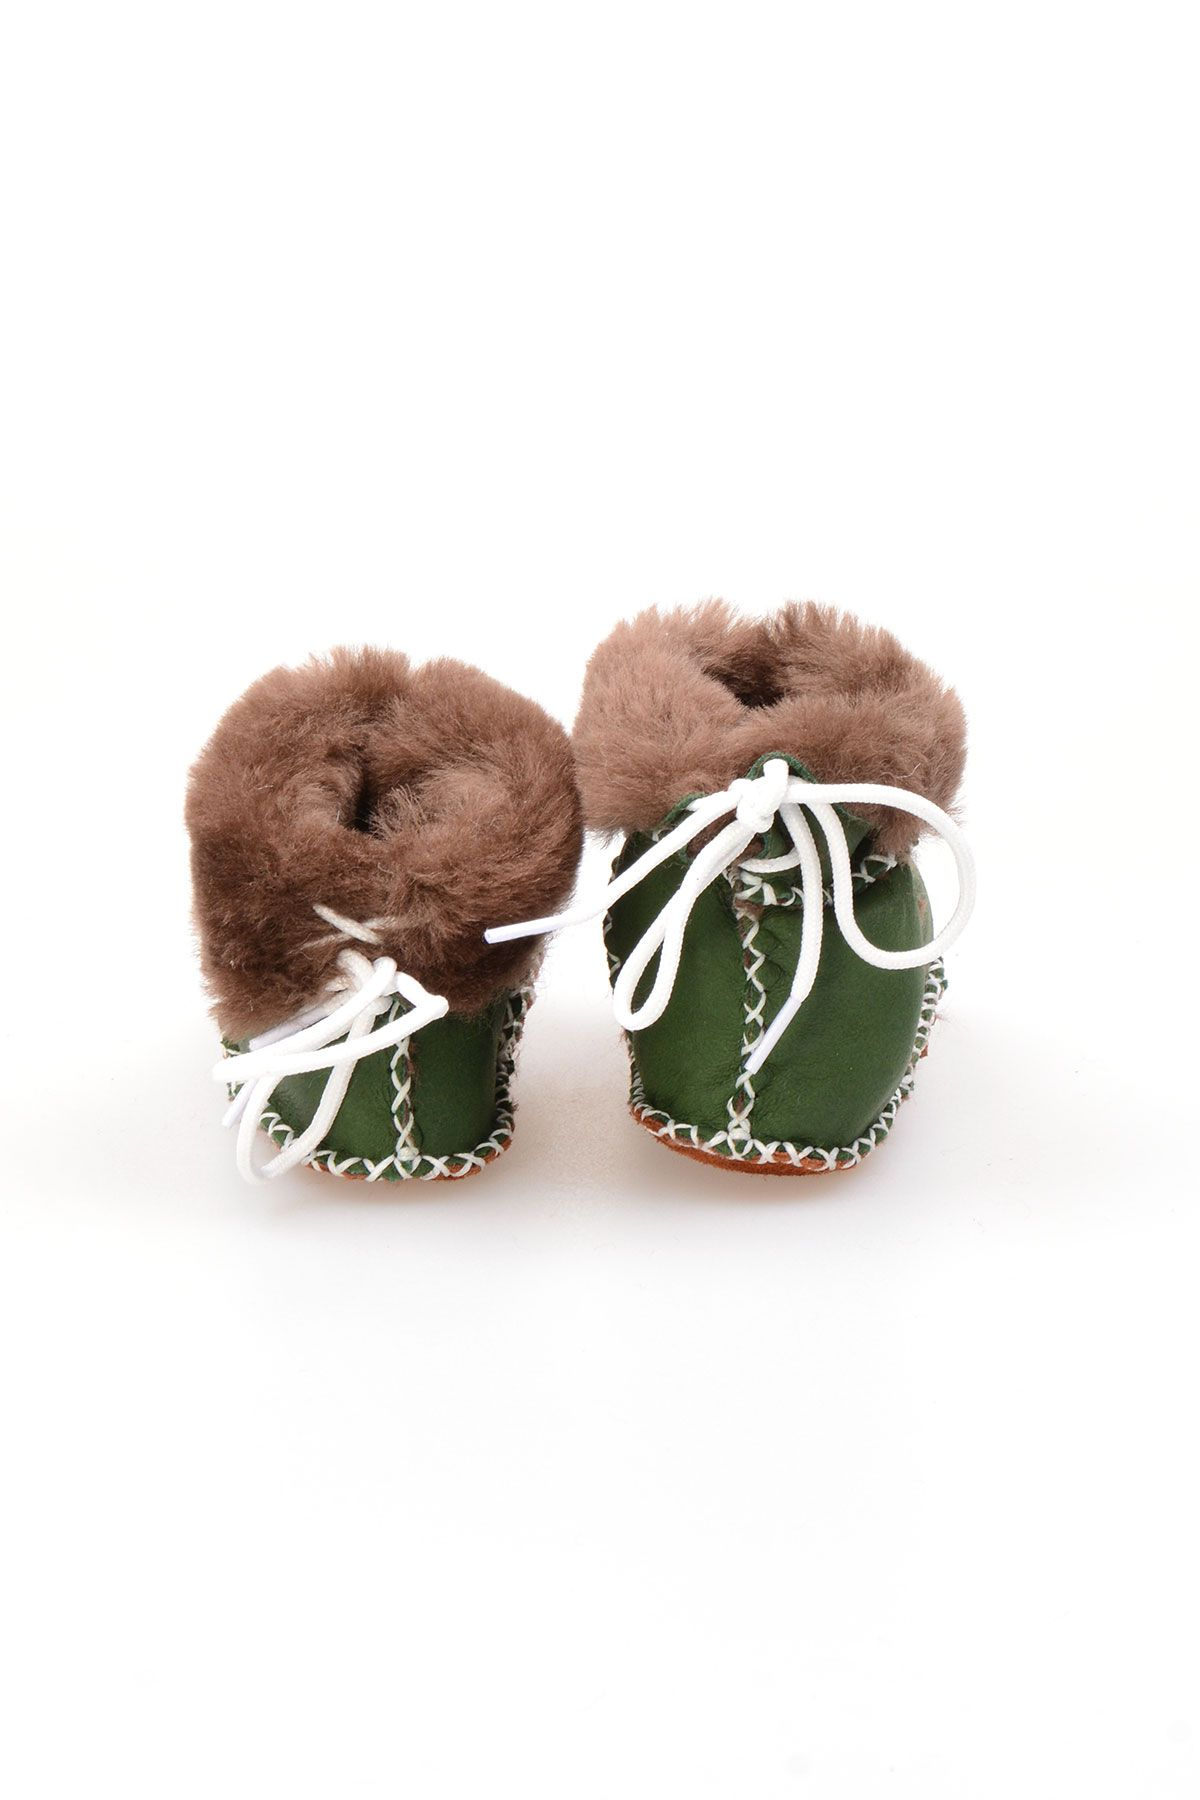 Pegia Babies Laced Shearling Booties 141105 Green